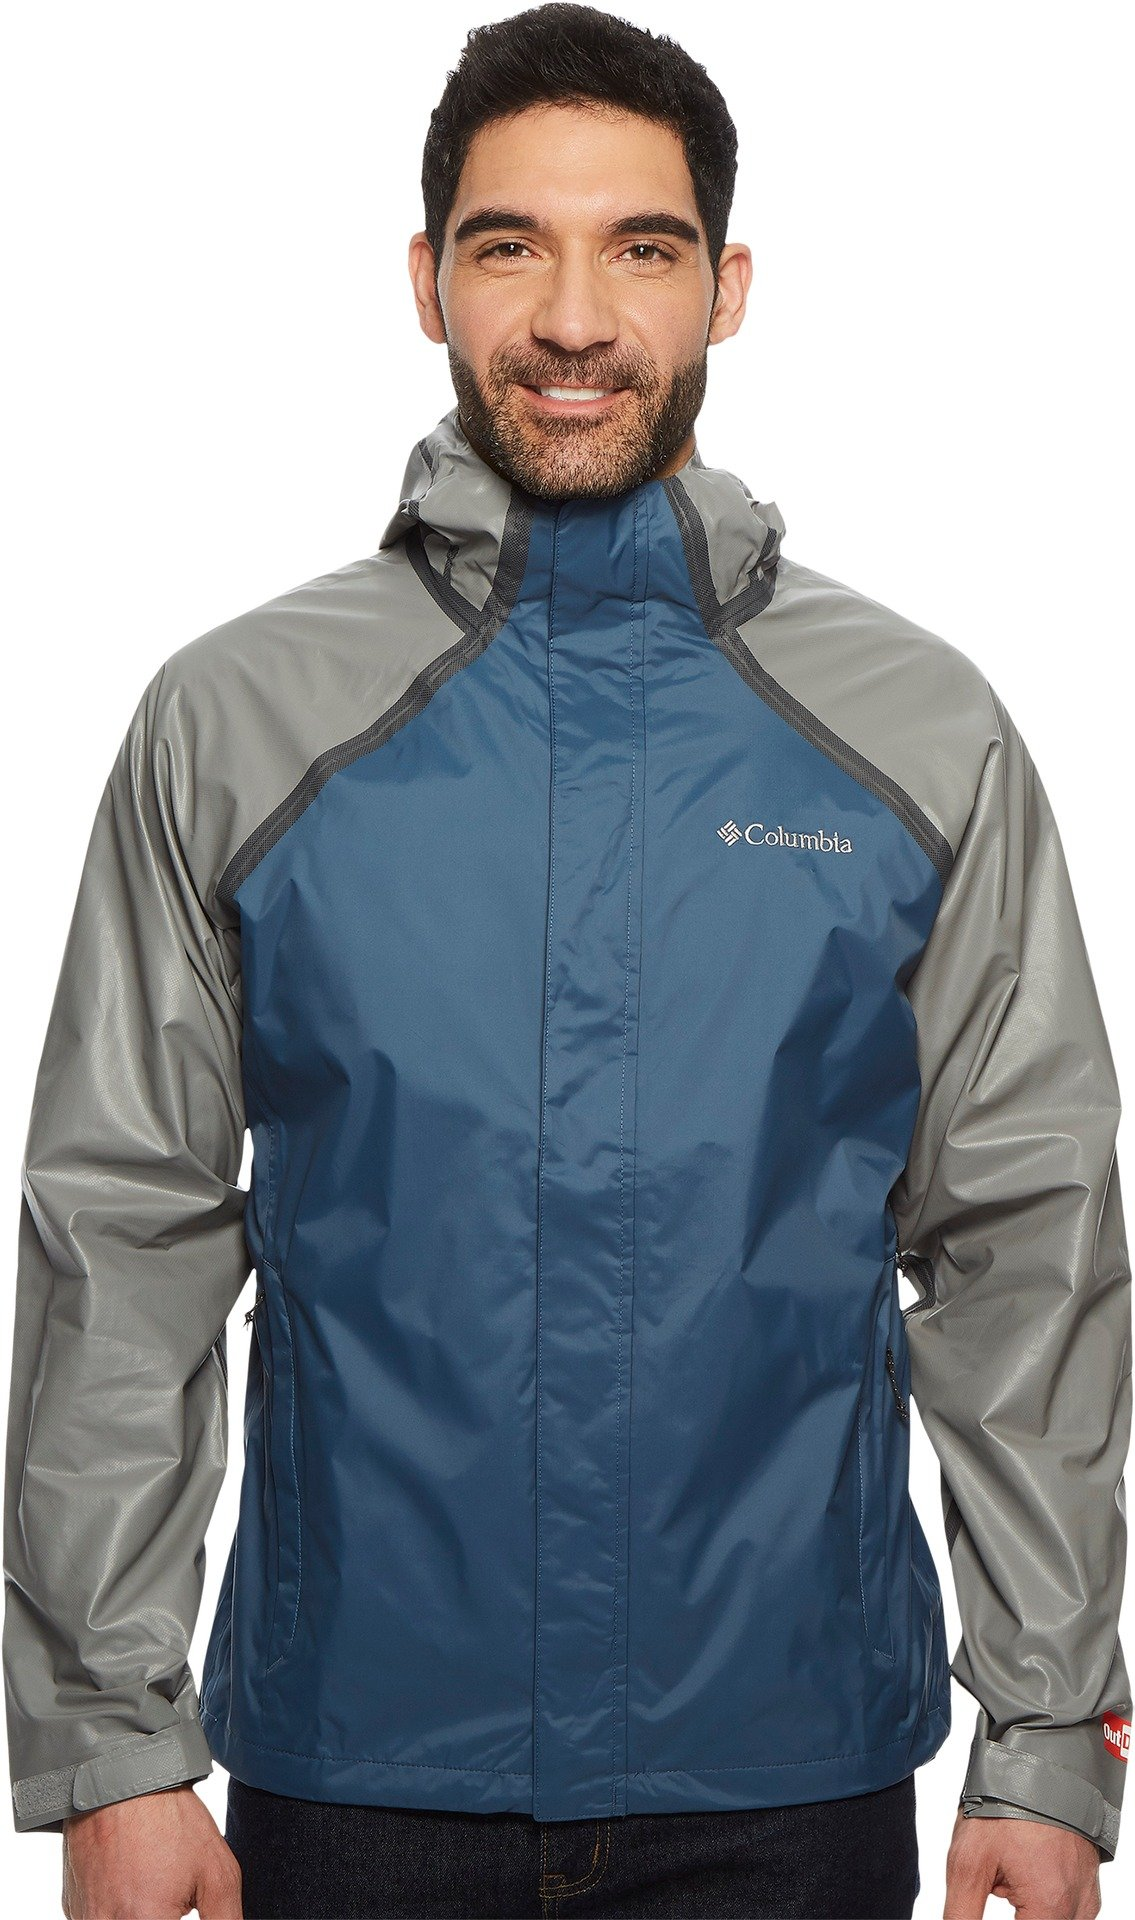 Columbia Men's Outdry Hybrid Jacket Whale/Titanium X-Large by Columbia